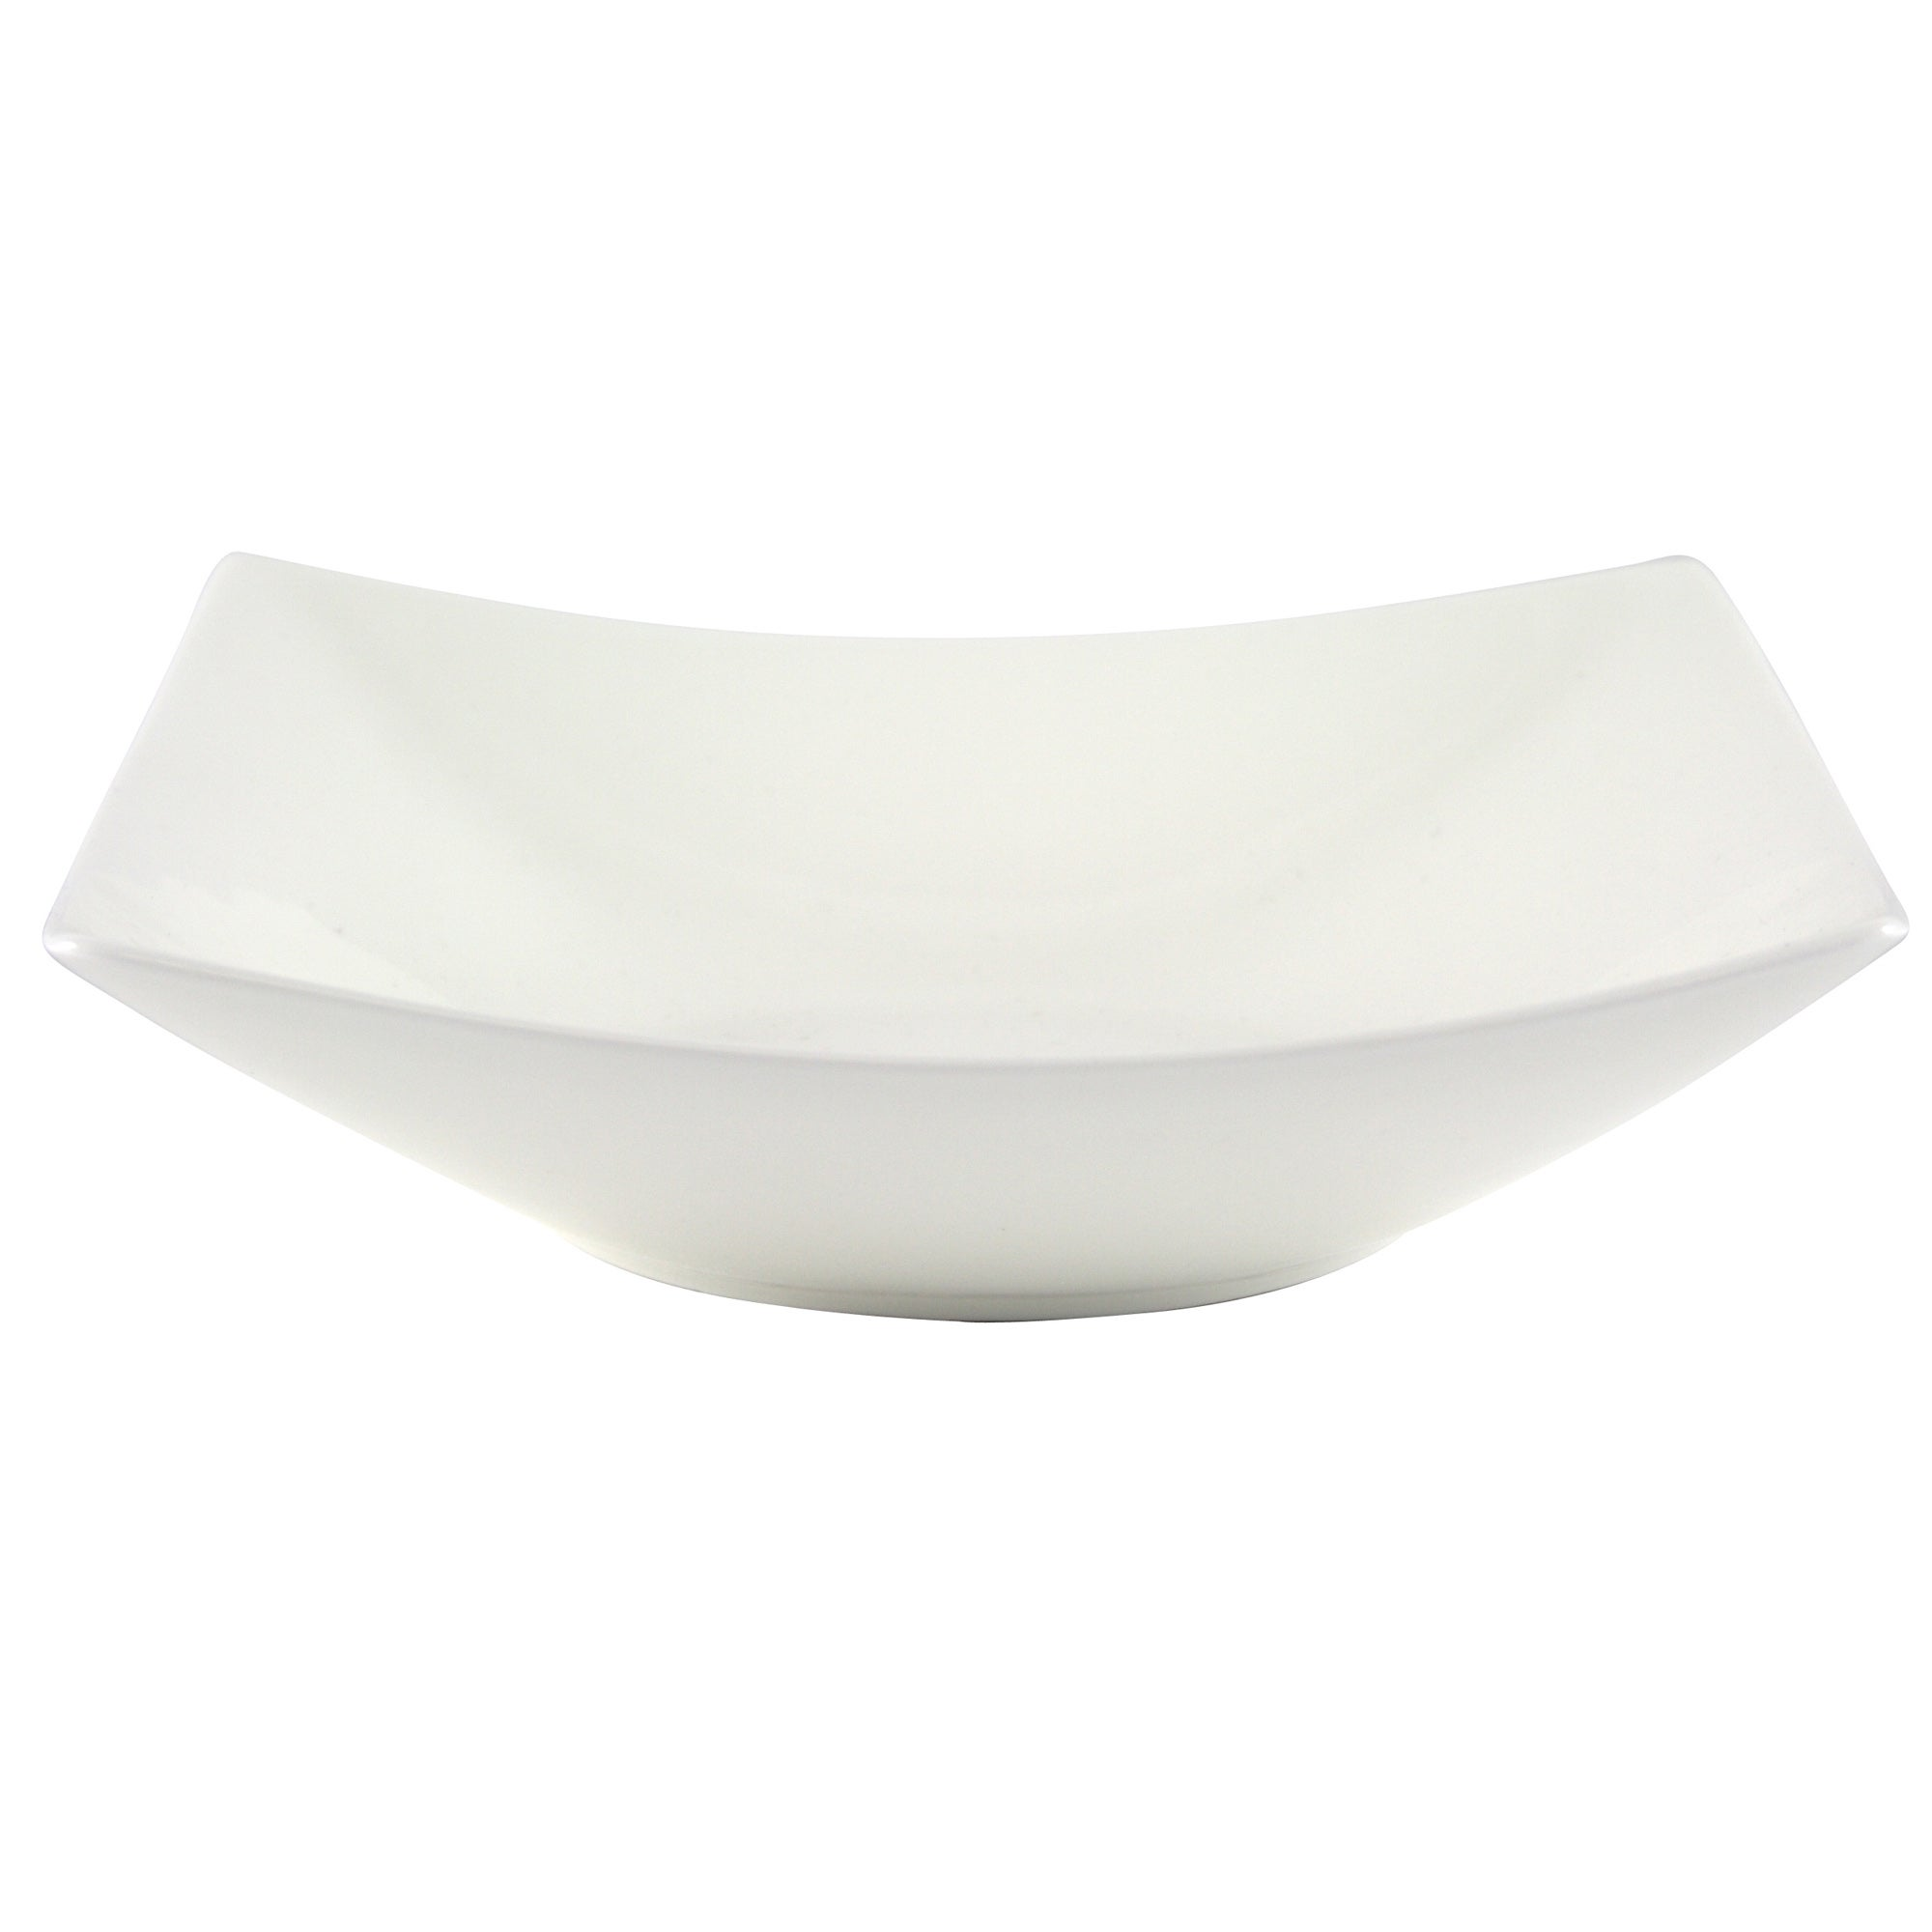 Dorma Knightsbridge Cereal Bowl